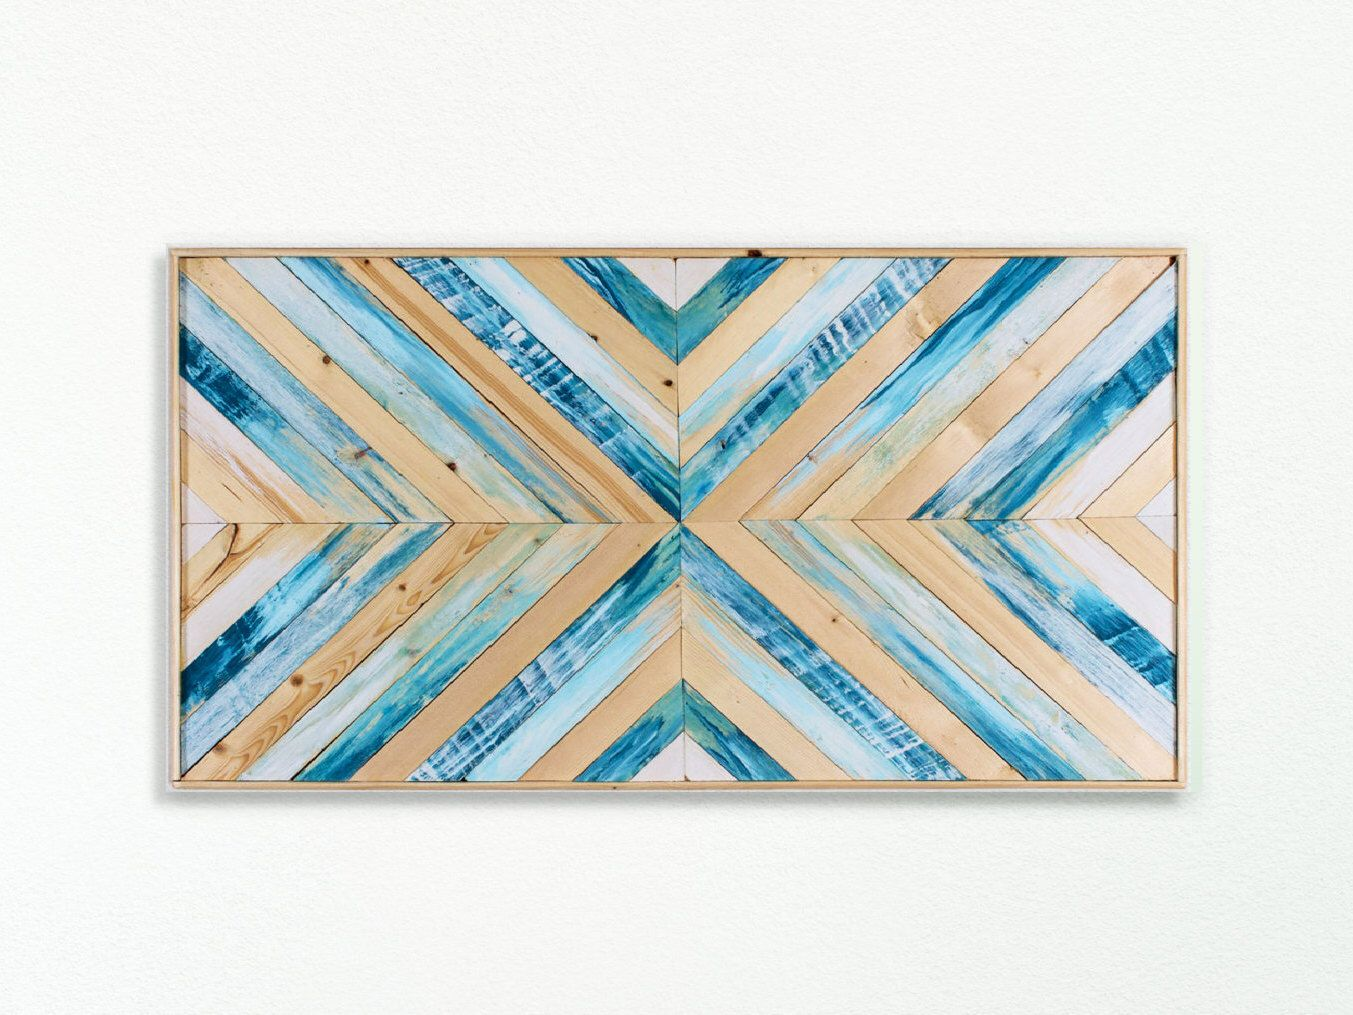 Beach Wood Wall Art Wood Wall Art Large Wall Art Wooden Wall